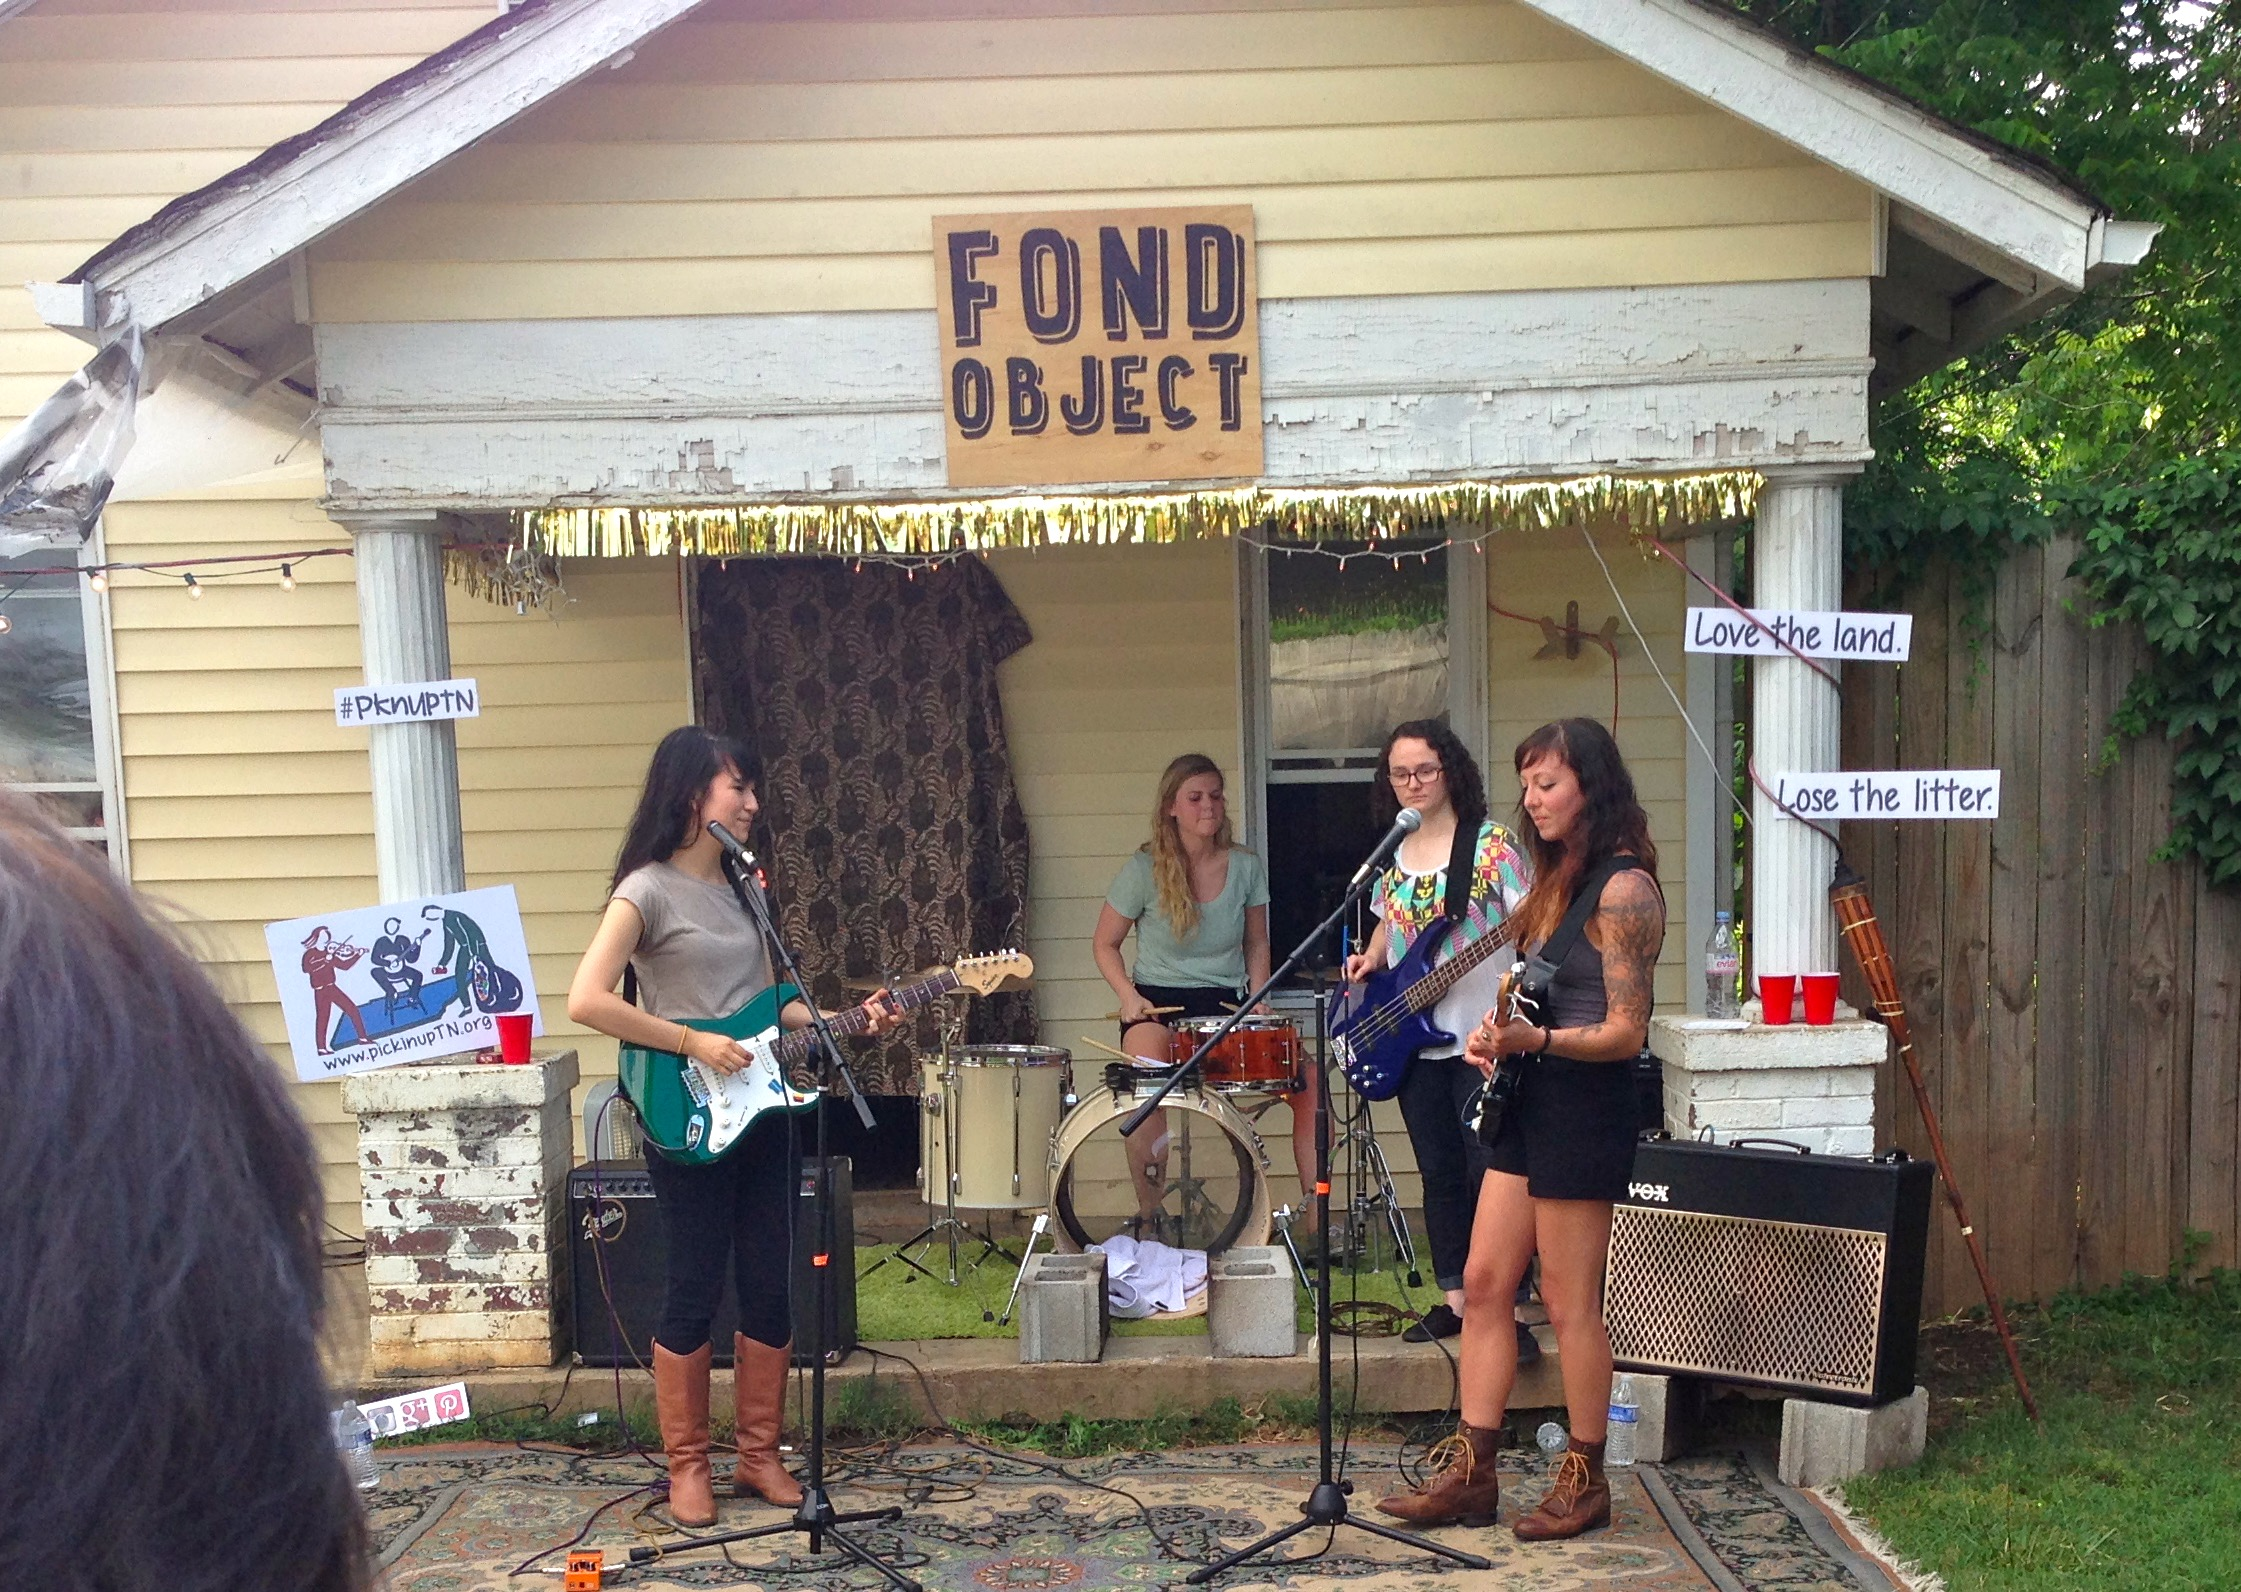 Meghan D'Amico, Rebecca Cholewa, Rachel Warrick and Alice Buchanan play before an outdoor crowd at the hip East Nashville record store Fond Object on Tour Day 2.